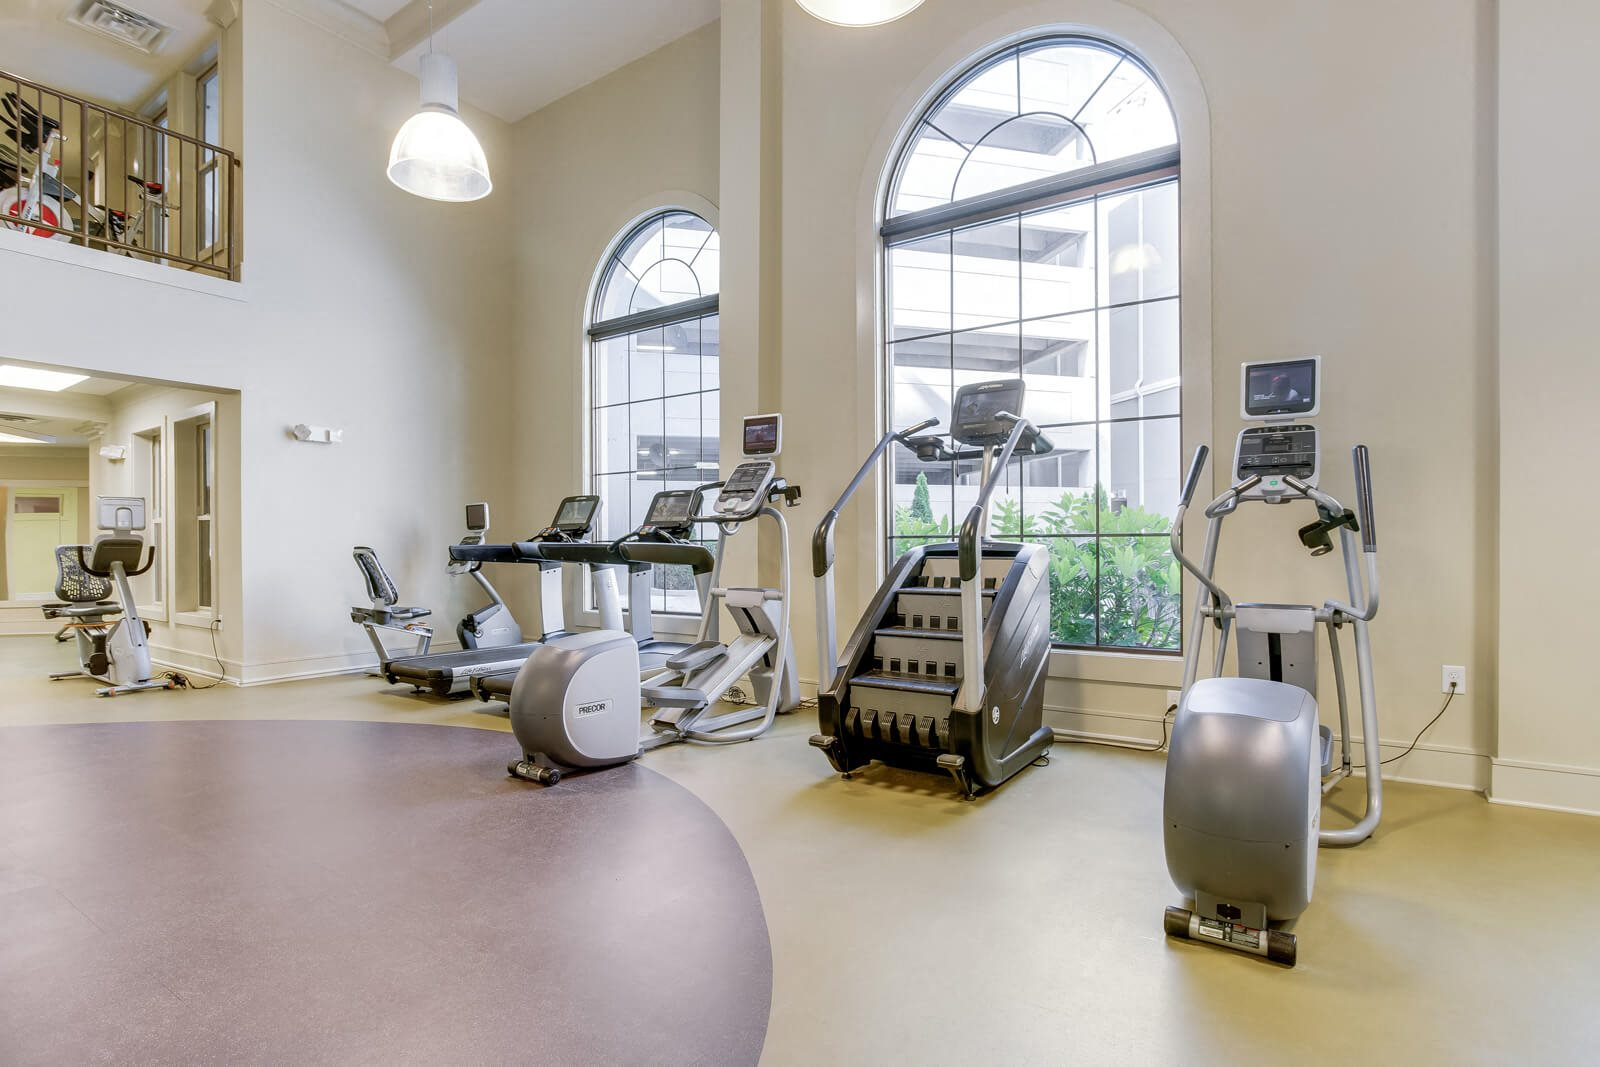 Cardio Equipment In Gym with Outdoor View at Windsor at Glenridge, 5610 Glenridge Drive, Sandy Springs